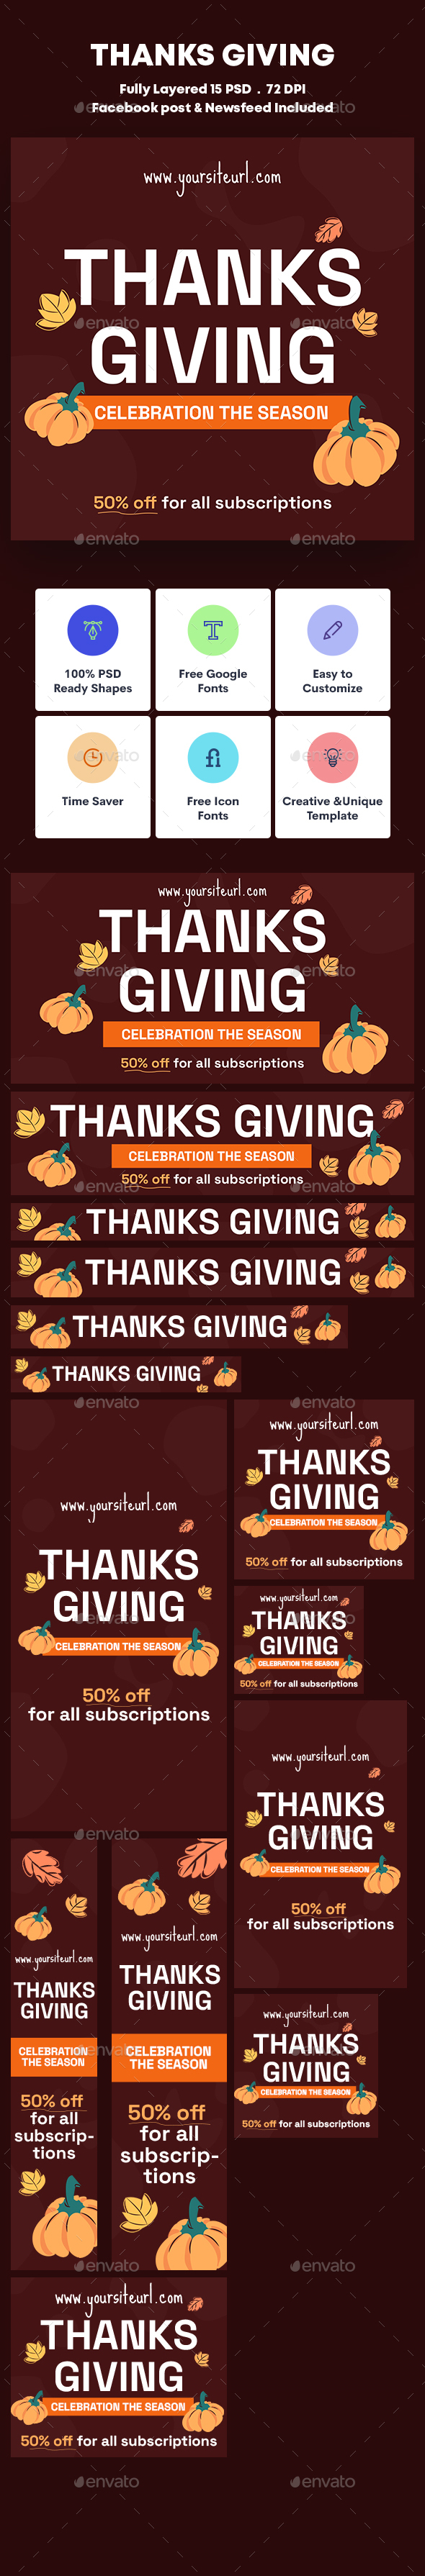 Thanks Giving Banners Ad